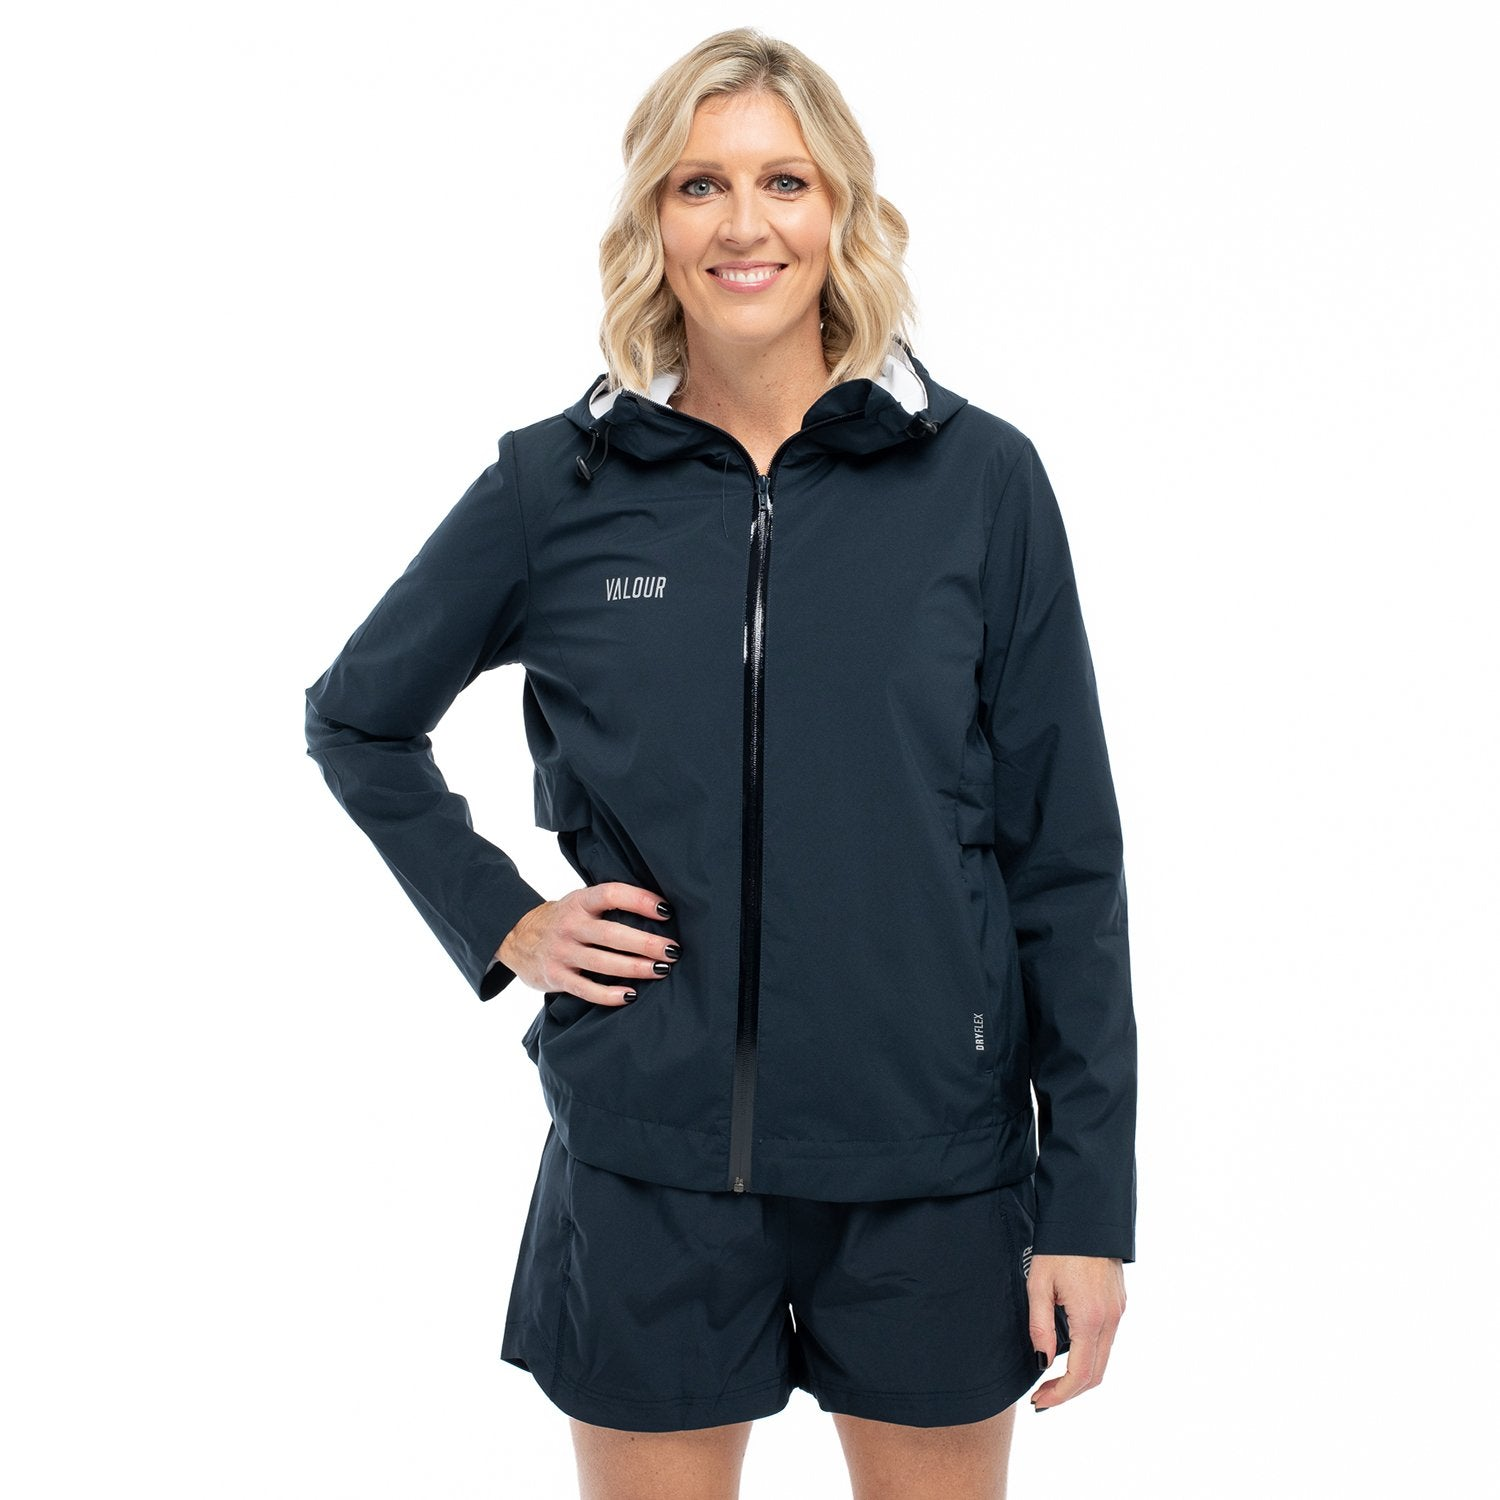 Valour Active Ladies Jacket-Navy